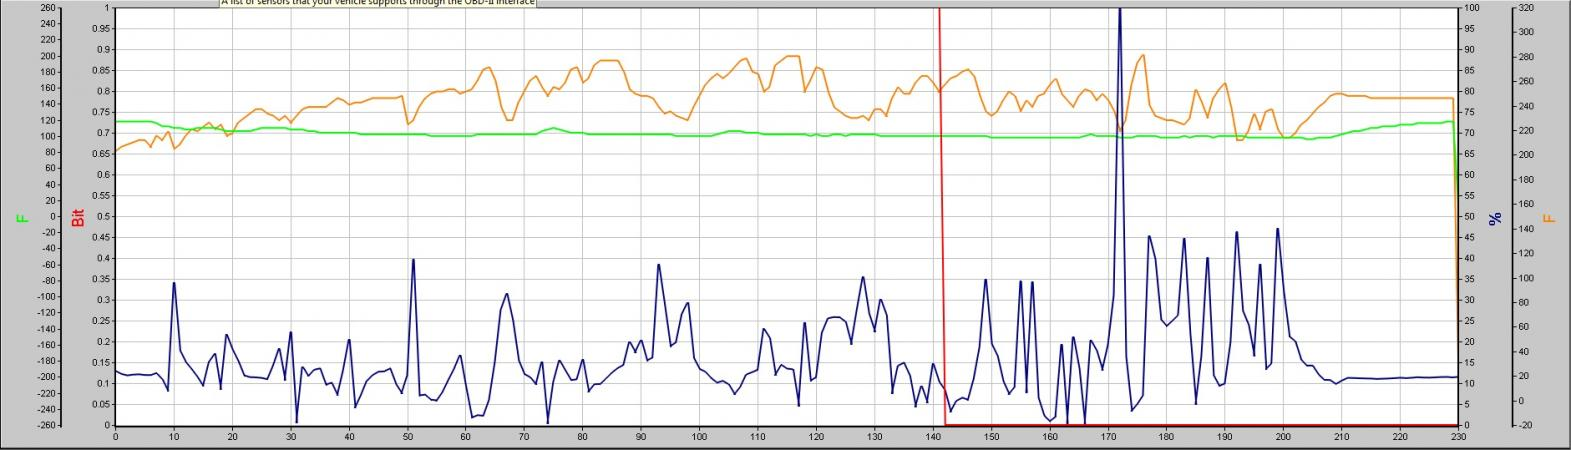 Air temps before and after the turbo with different setups.-stocktunewegr.jpg